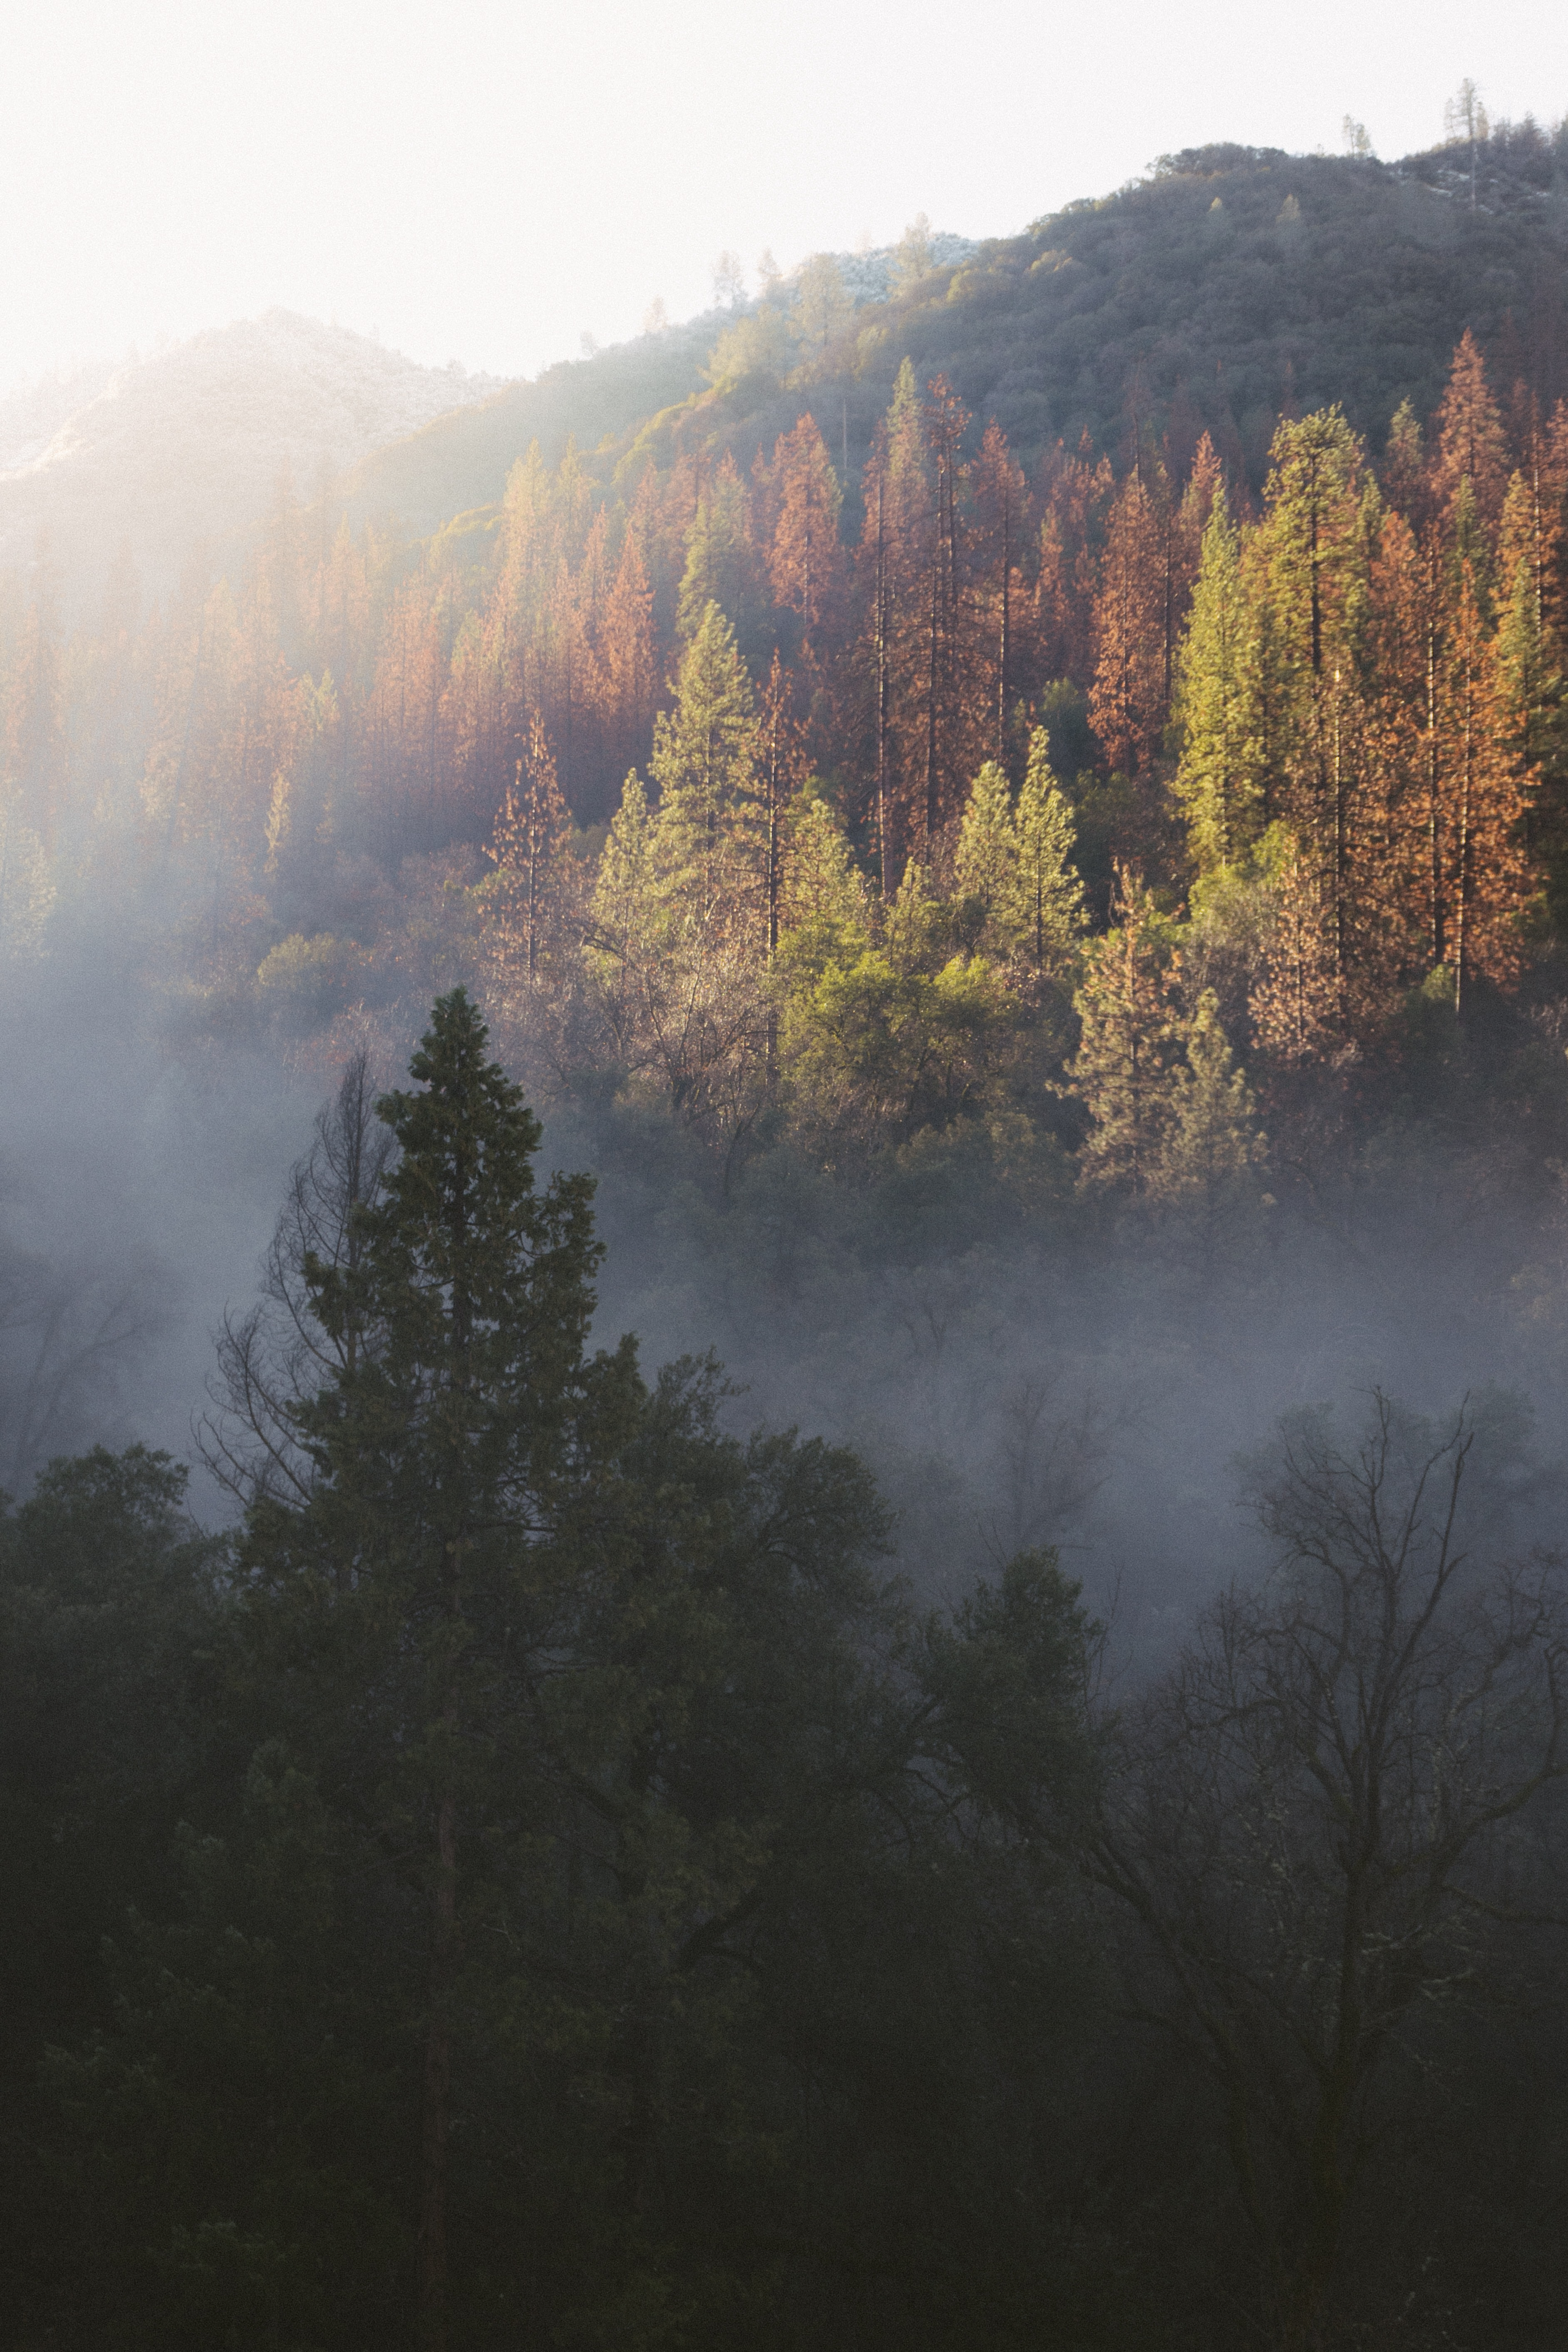 A forest with autumn-colored trees on hills near Merced River